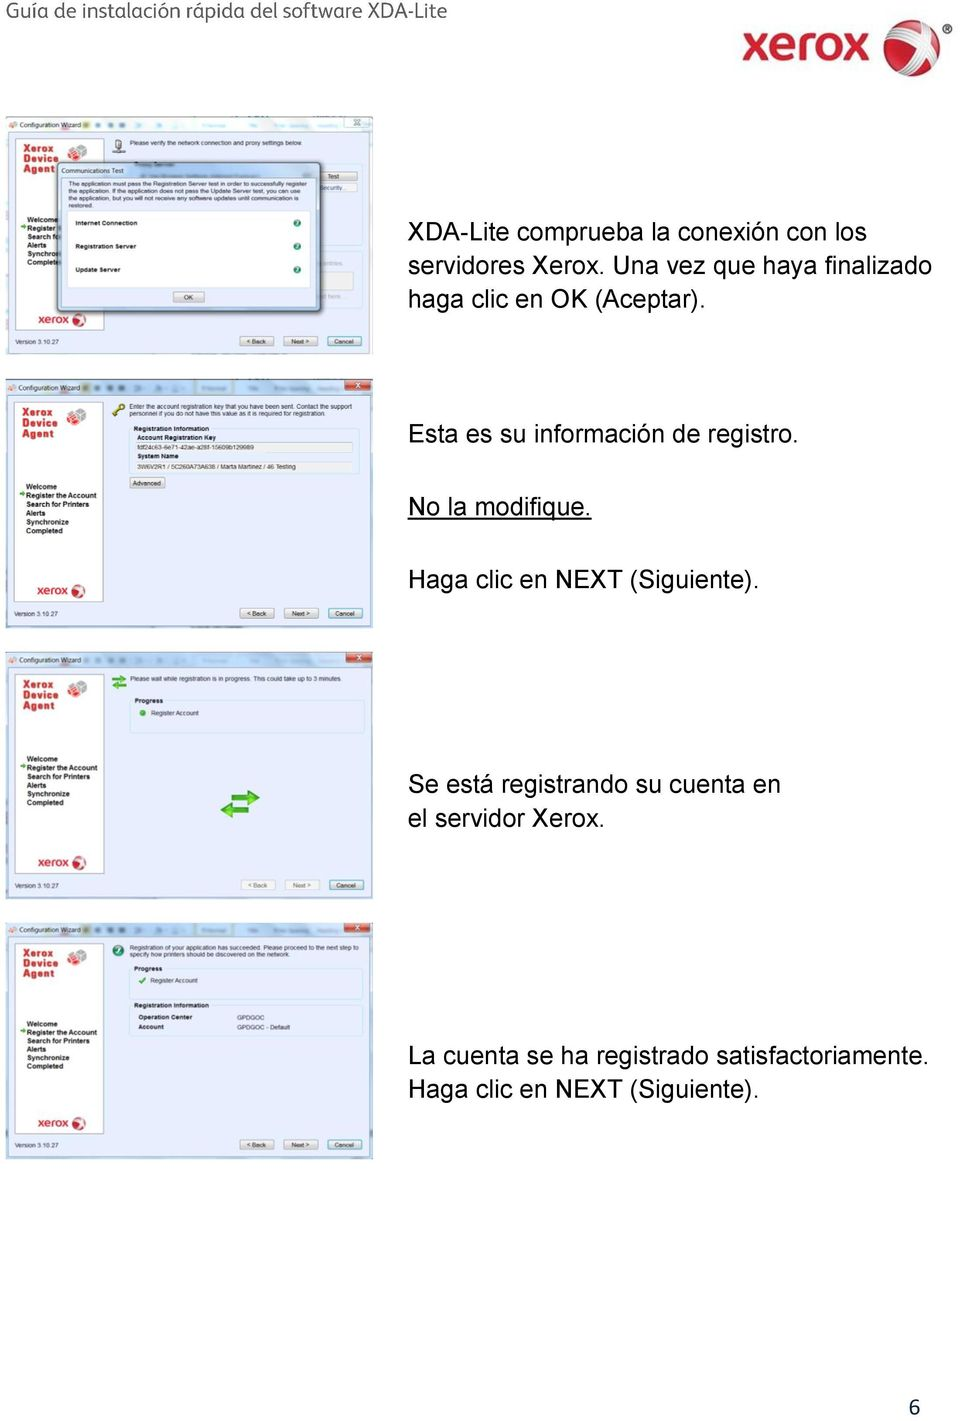 Esta es su información de registro. No la modifique.